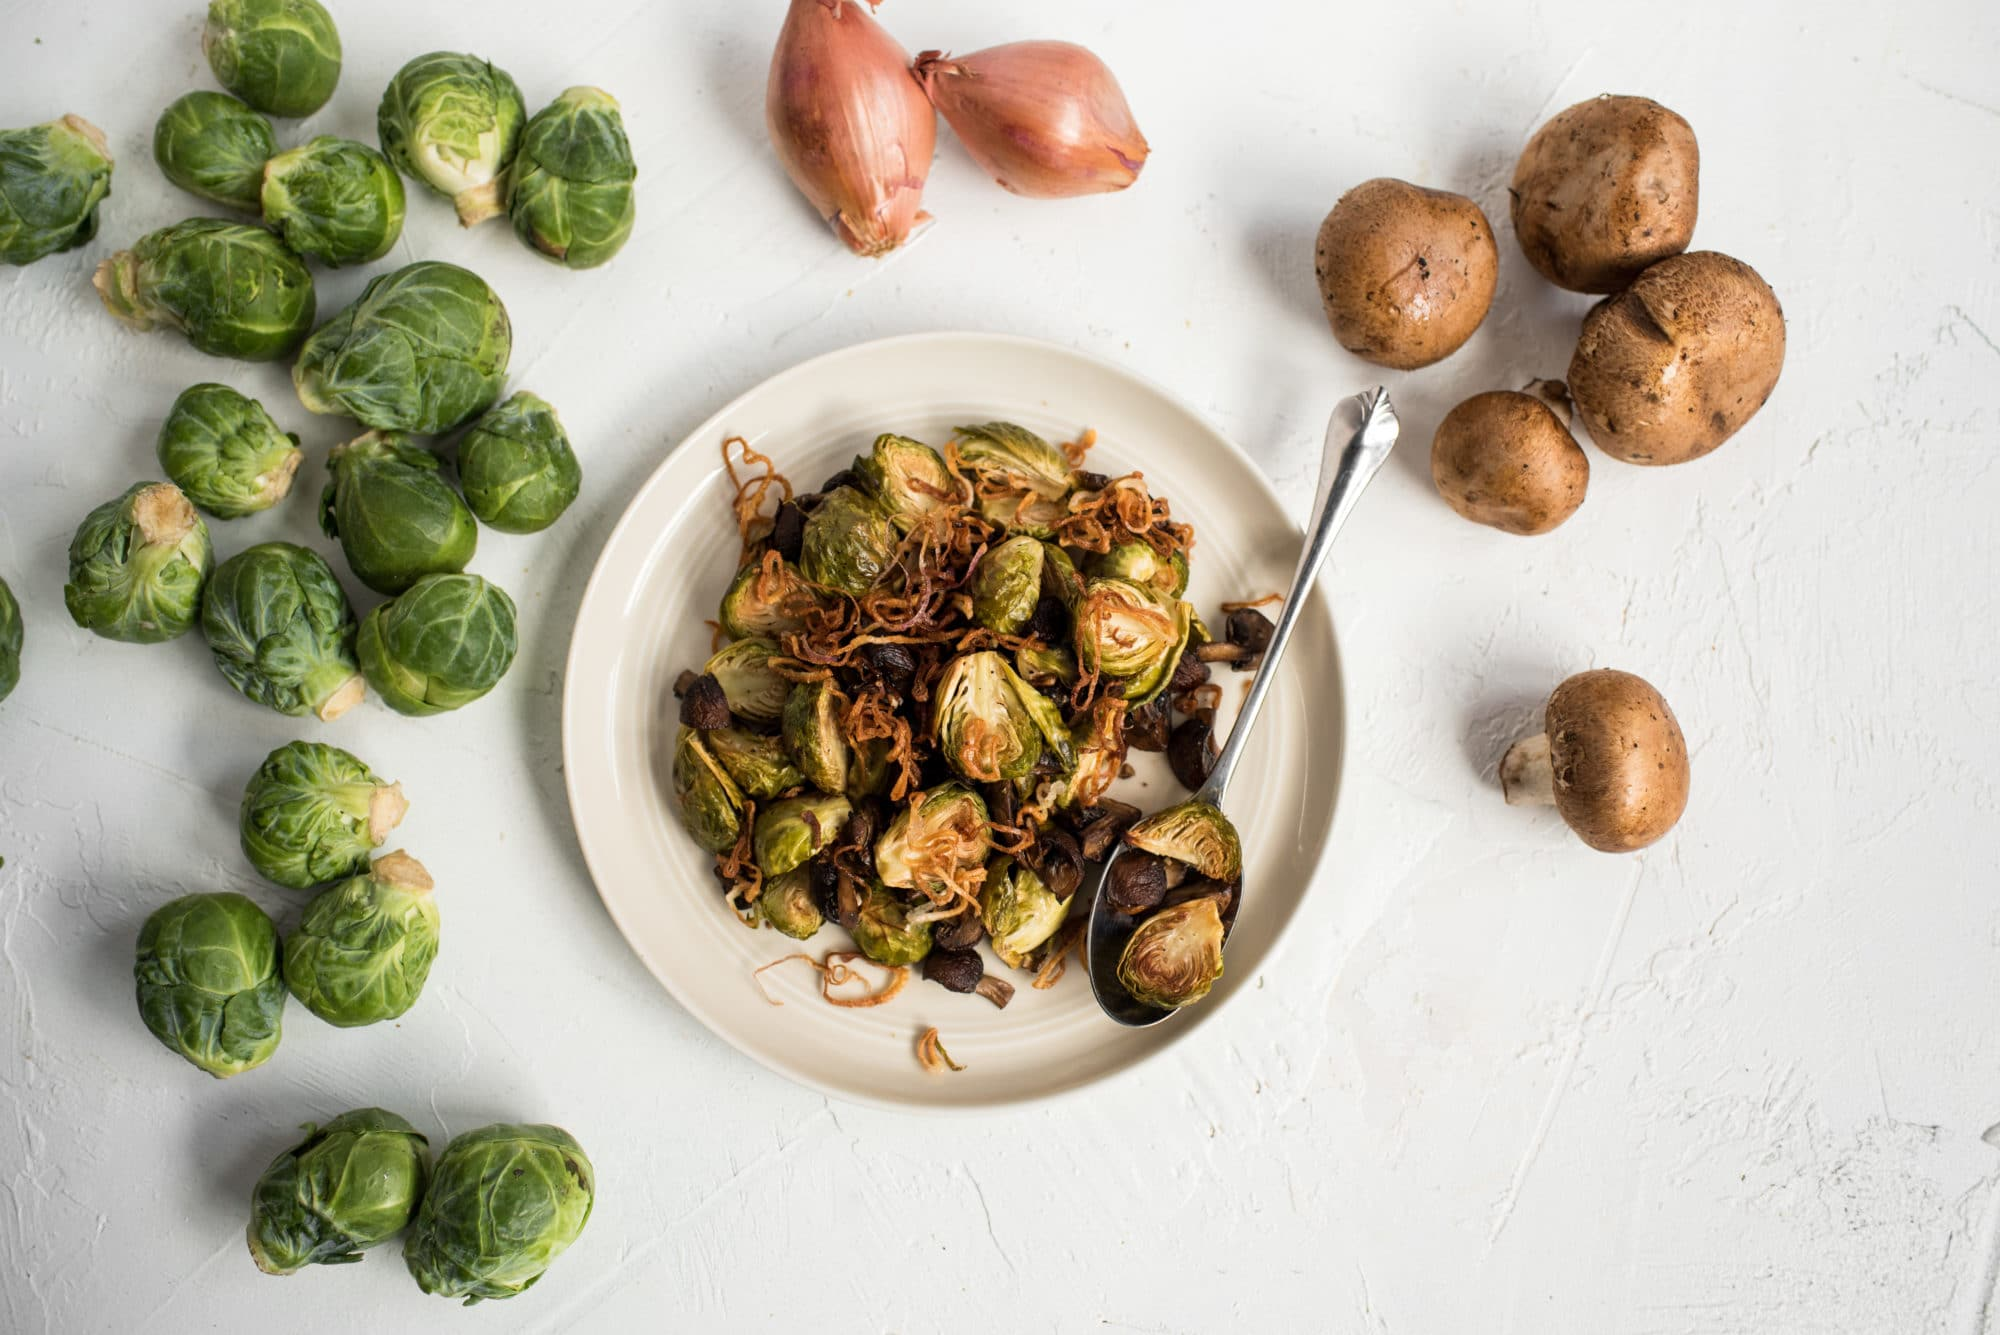 Caramelized Brussels Sprouts with Mushrooms and fried shallots on platter